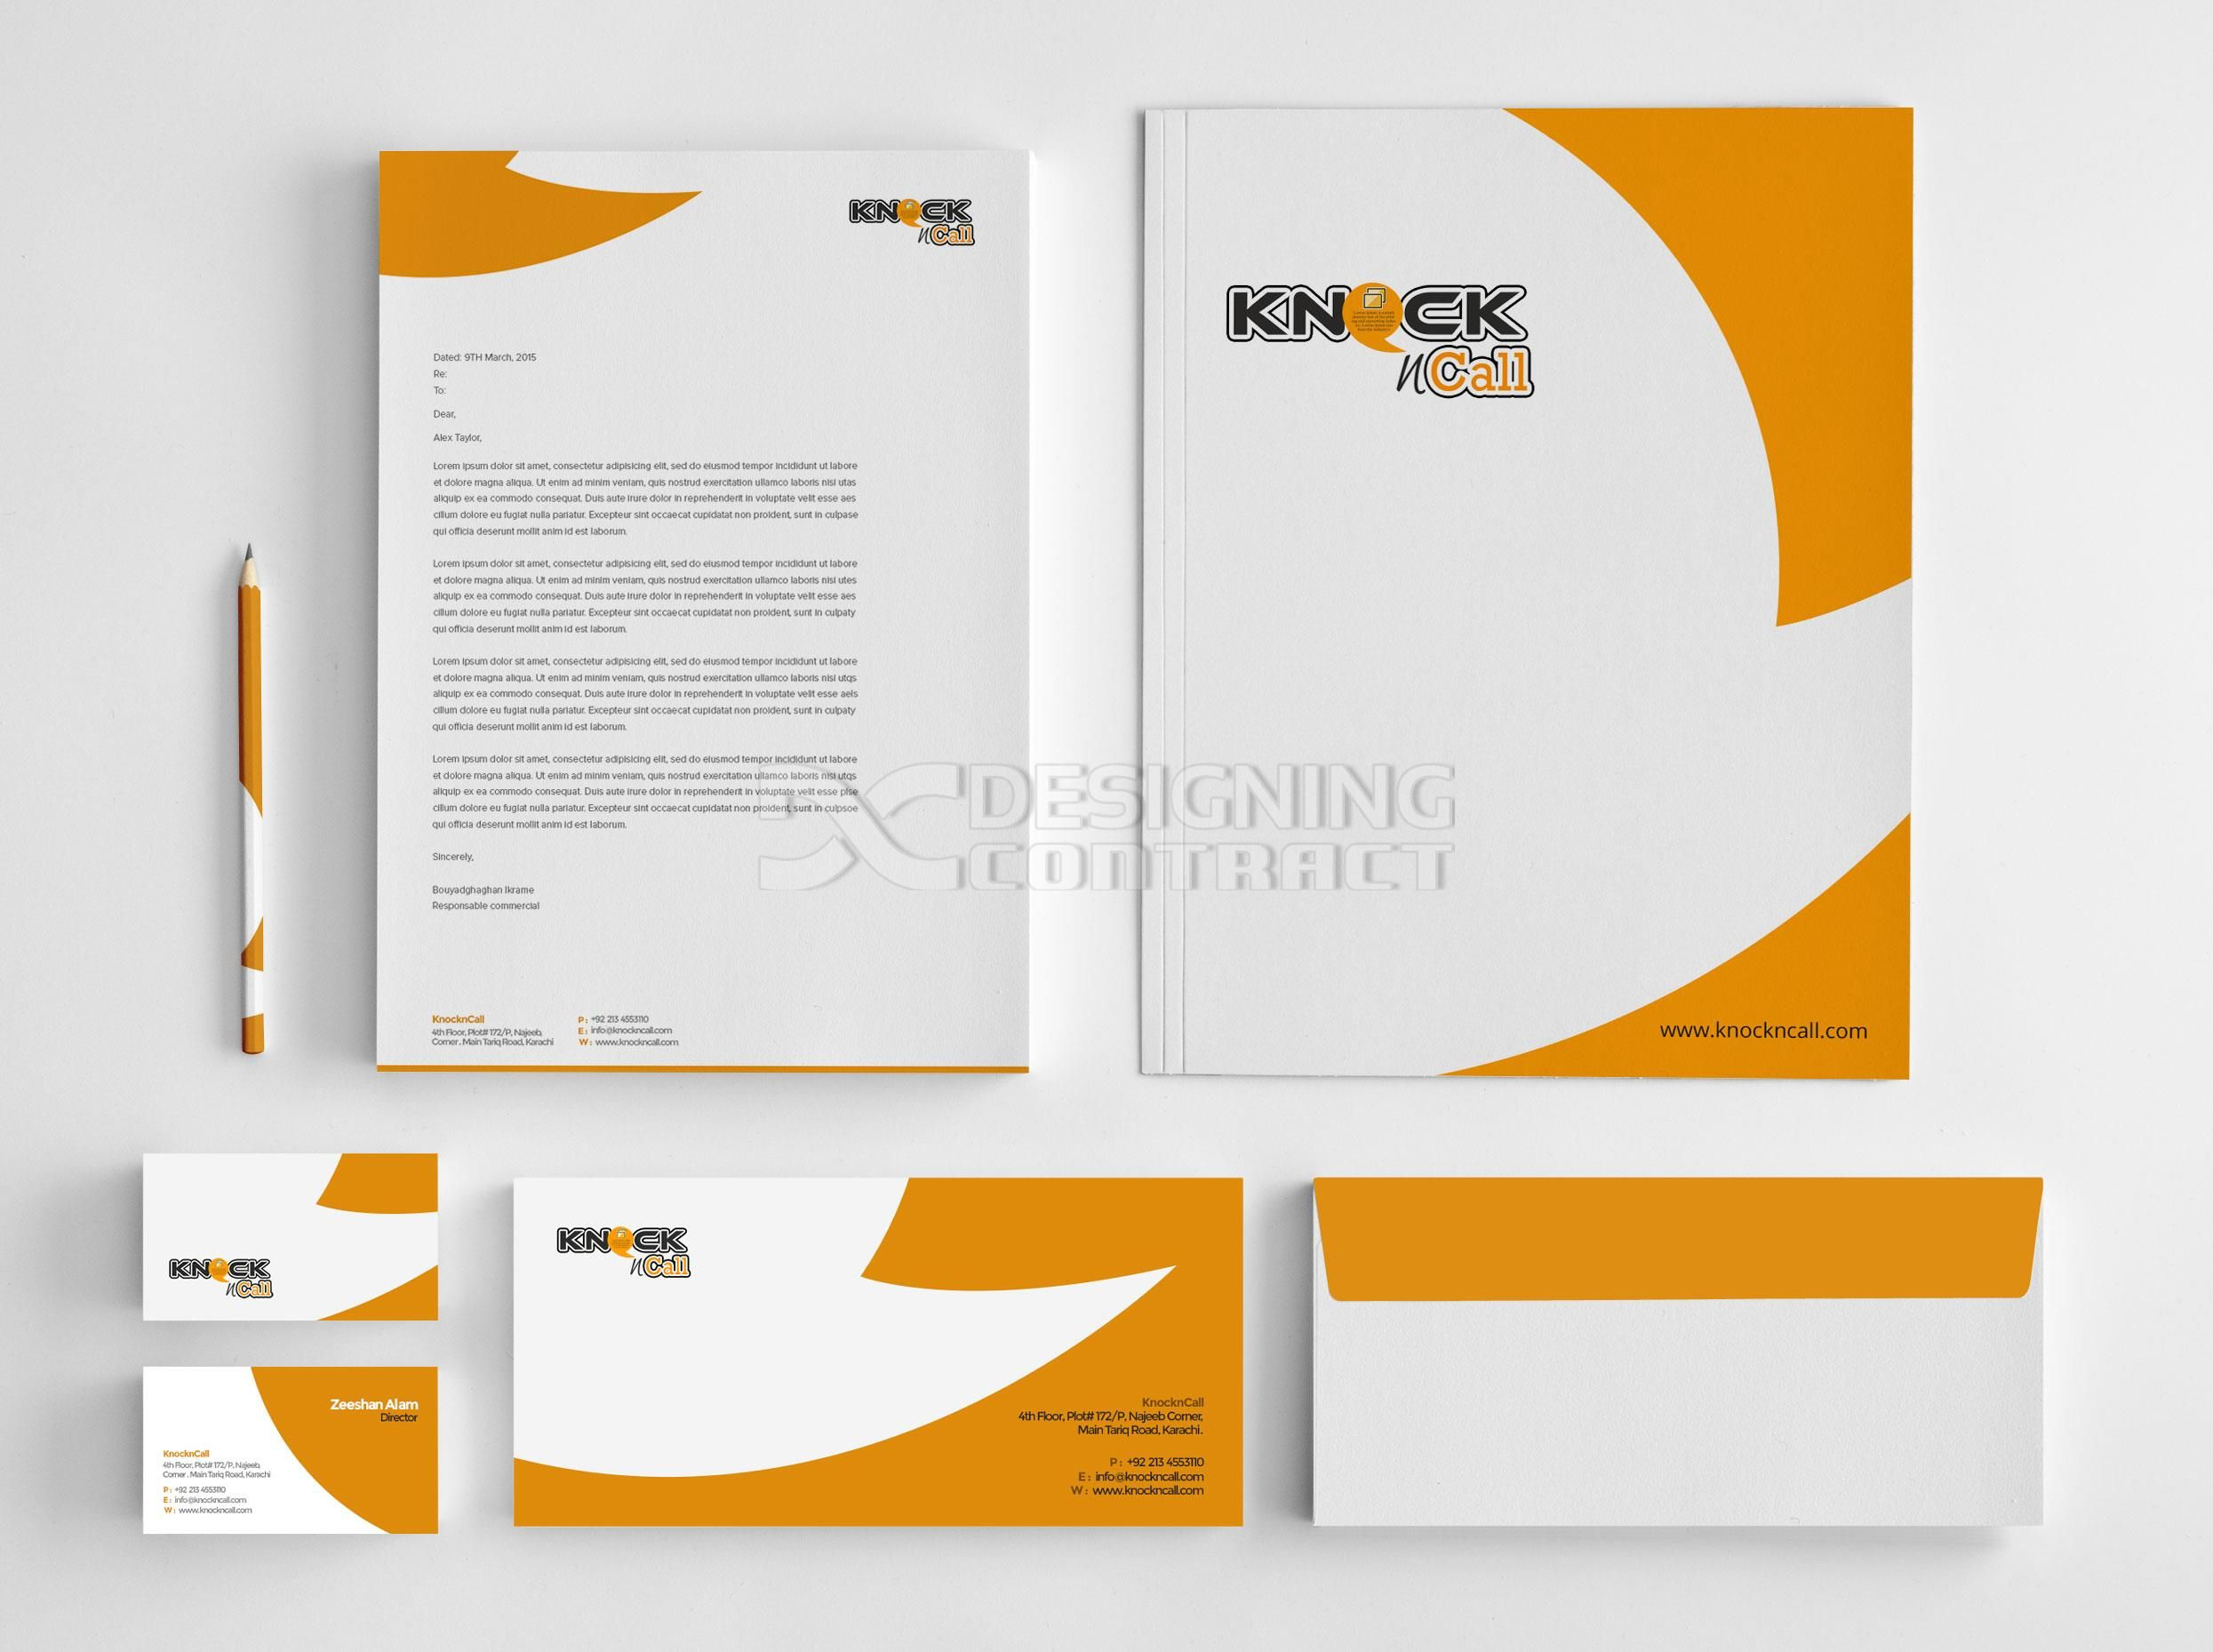 #businessstationery #flyerdesign #brochuredesign #businesscarddesign #hirestationerydesigner #branding #marketing #businessstationerydesign #buybrochuredesign